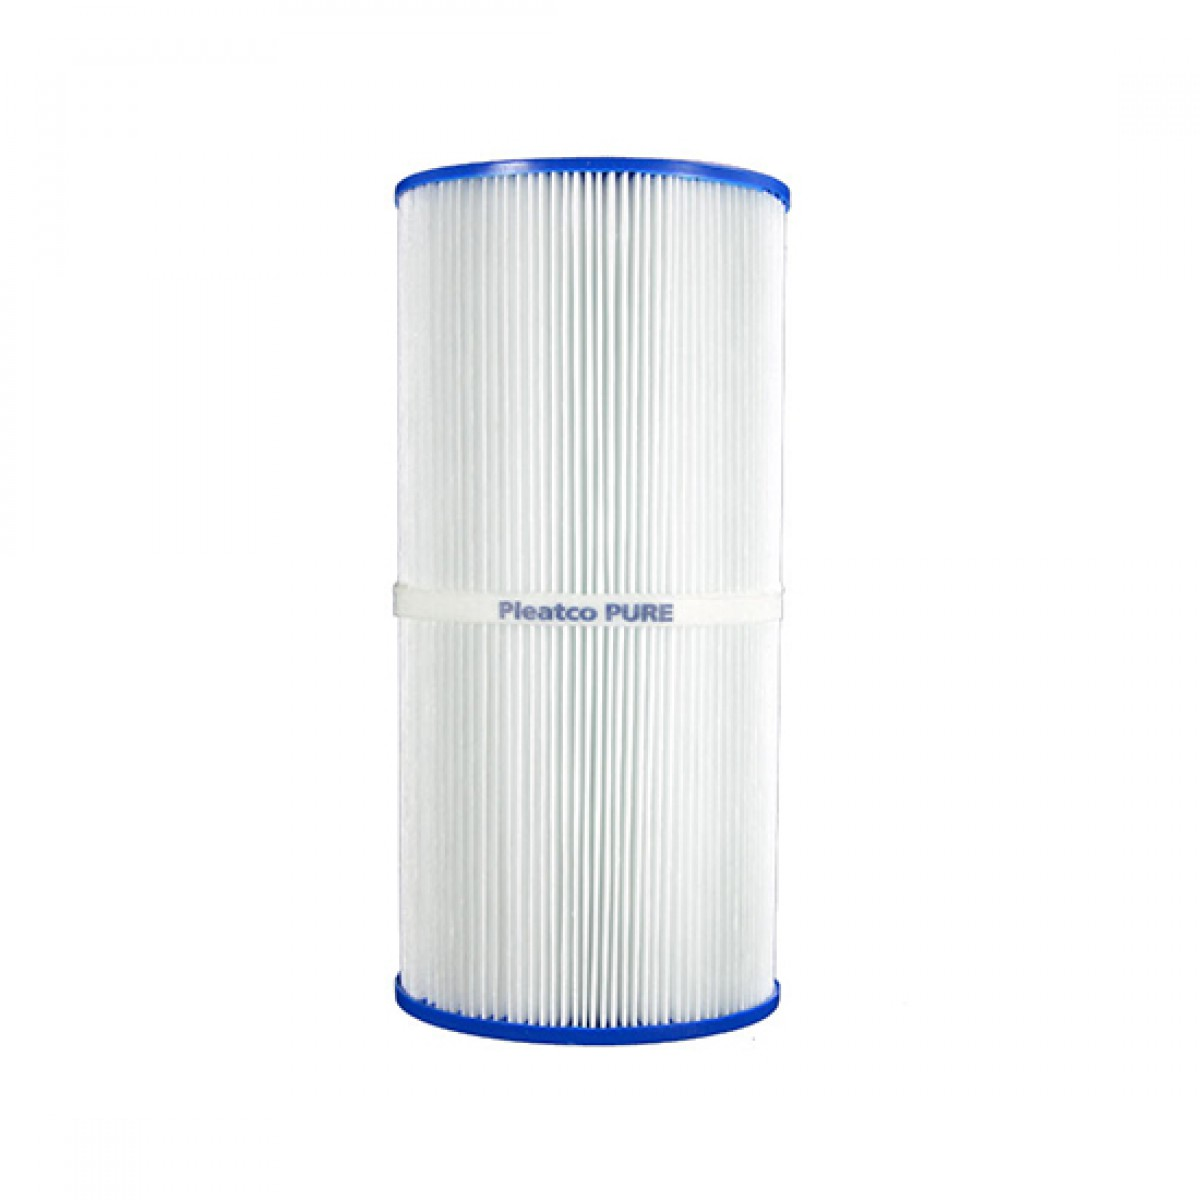 Jacuzzi Replacement Pool Filter Cartridge Pleatco Pjw25 Replacement Pool And Spa Filter